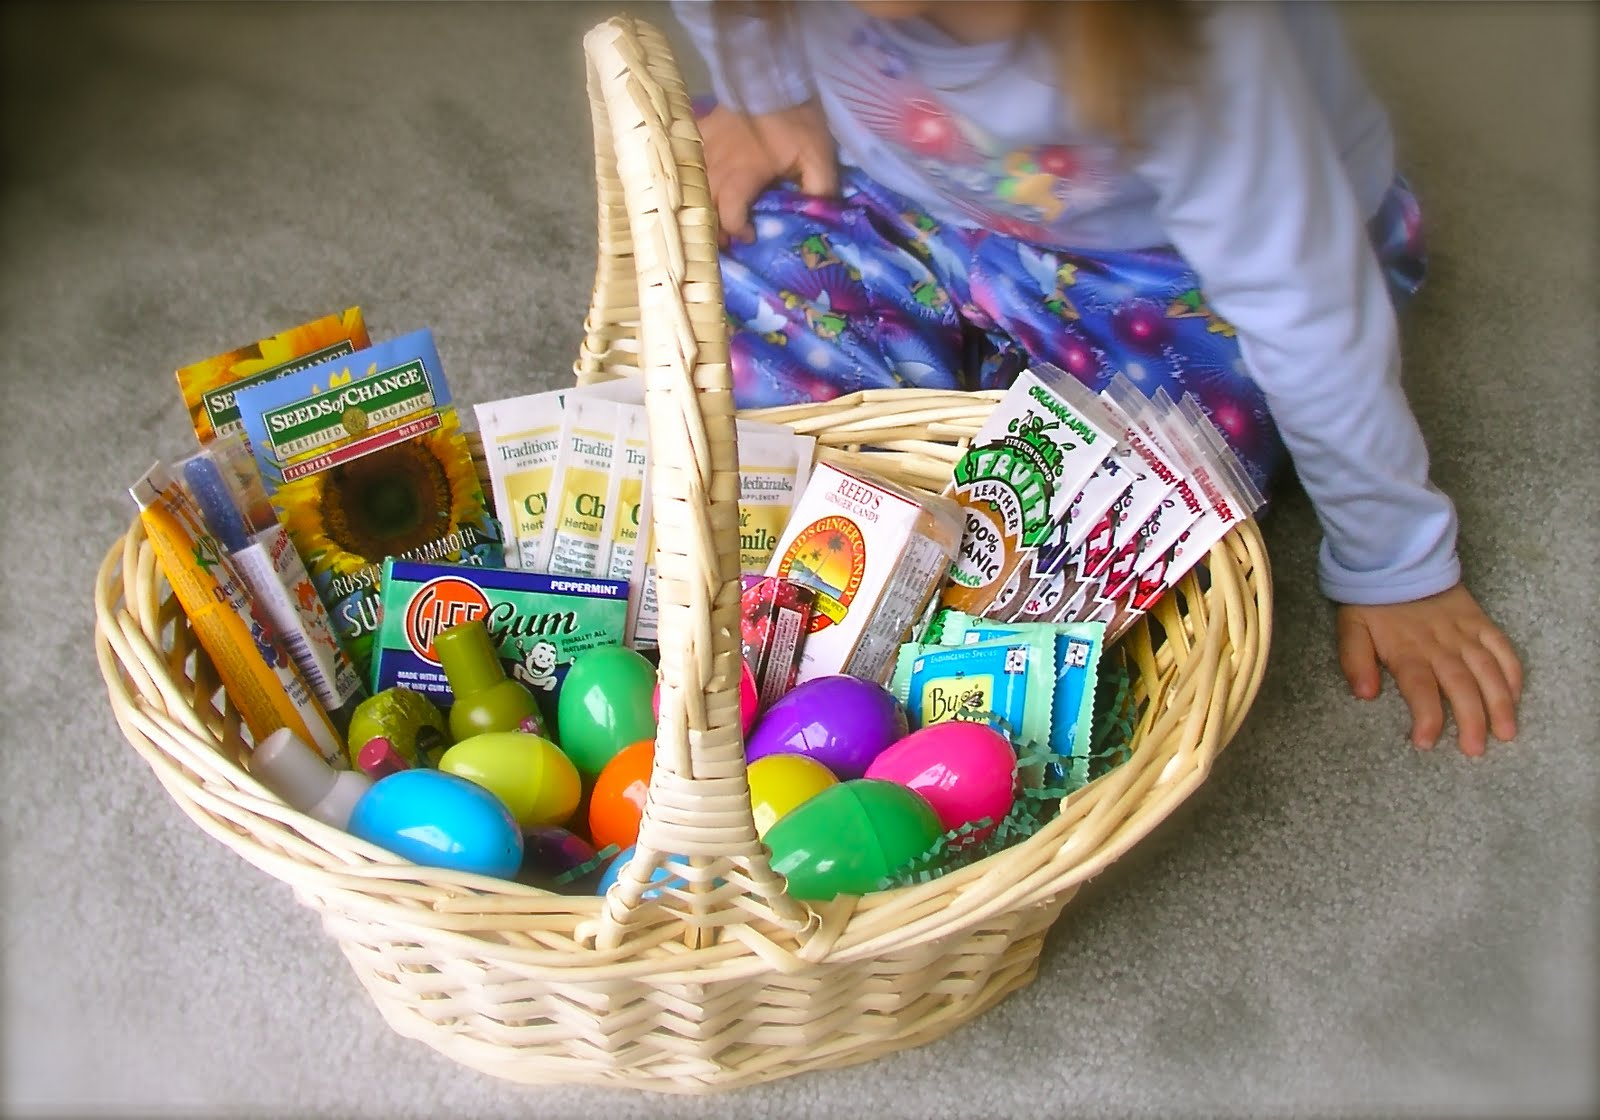 Nourishing meals healthy easter basket ideas healthy easter basket ideas negle Images